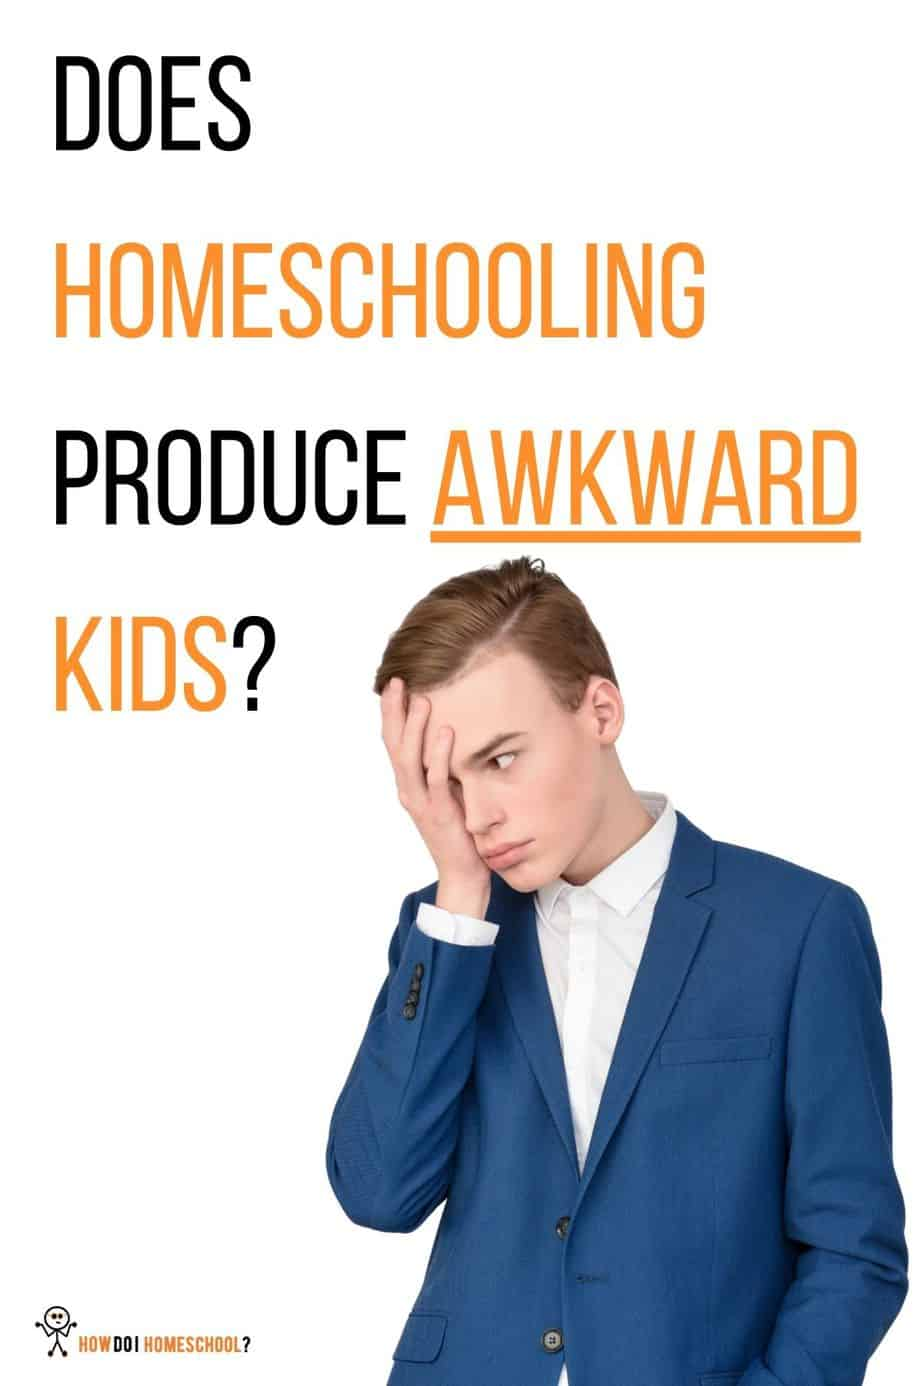 Are homeschoolers socially awkward or is it a perception. If so, why are homeschoolers socially awkward? We'll look at these questions and more in this video. #whyarehomeschoolerssociallyawkward